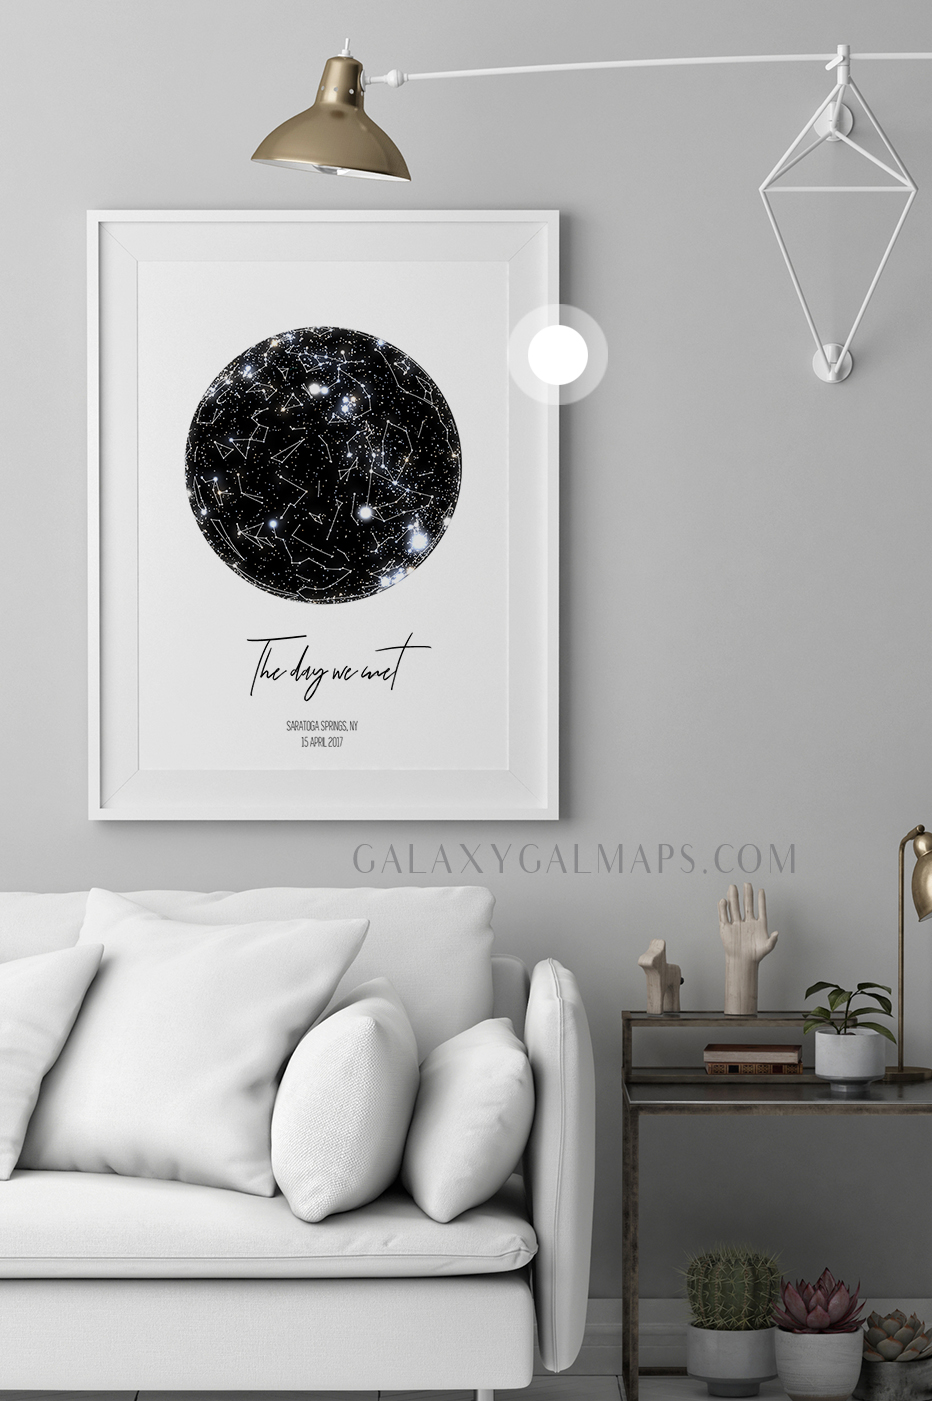 star map by date and location astrology poster wall art personalized family name sign framed print personalized wedding gift for blended family